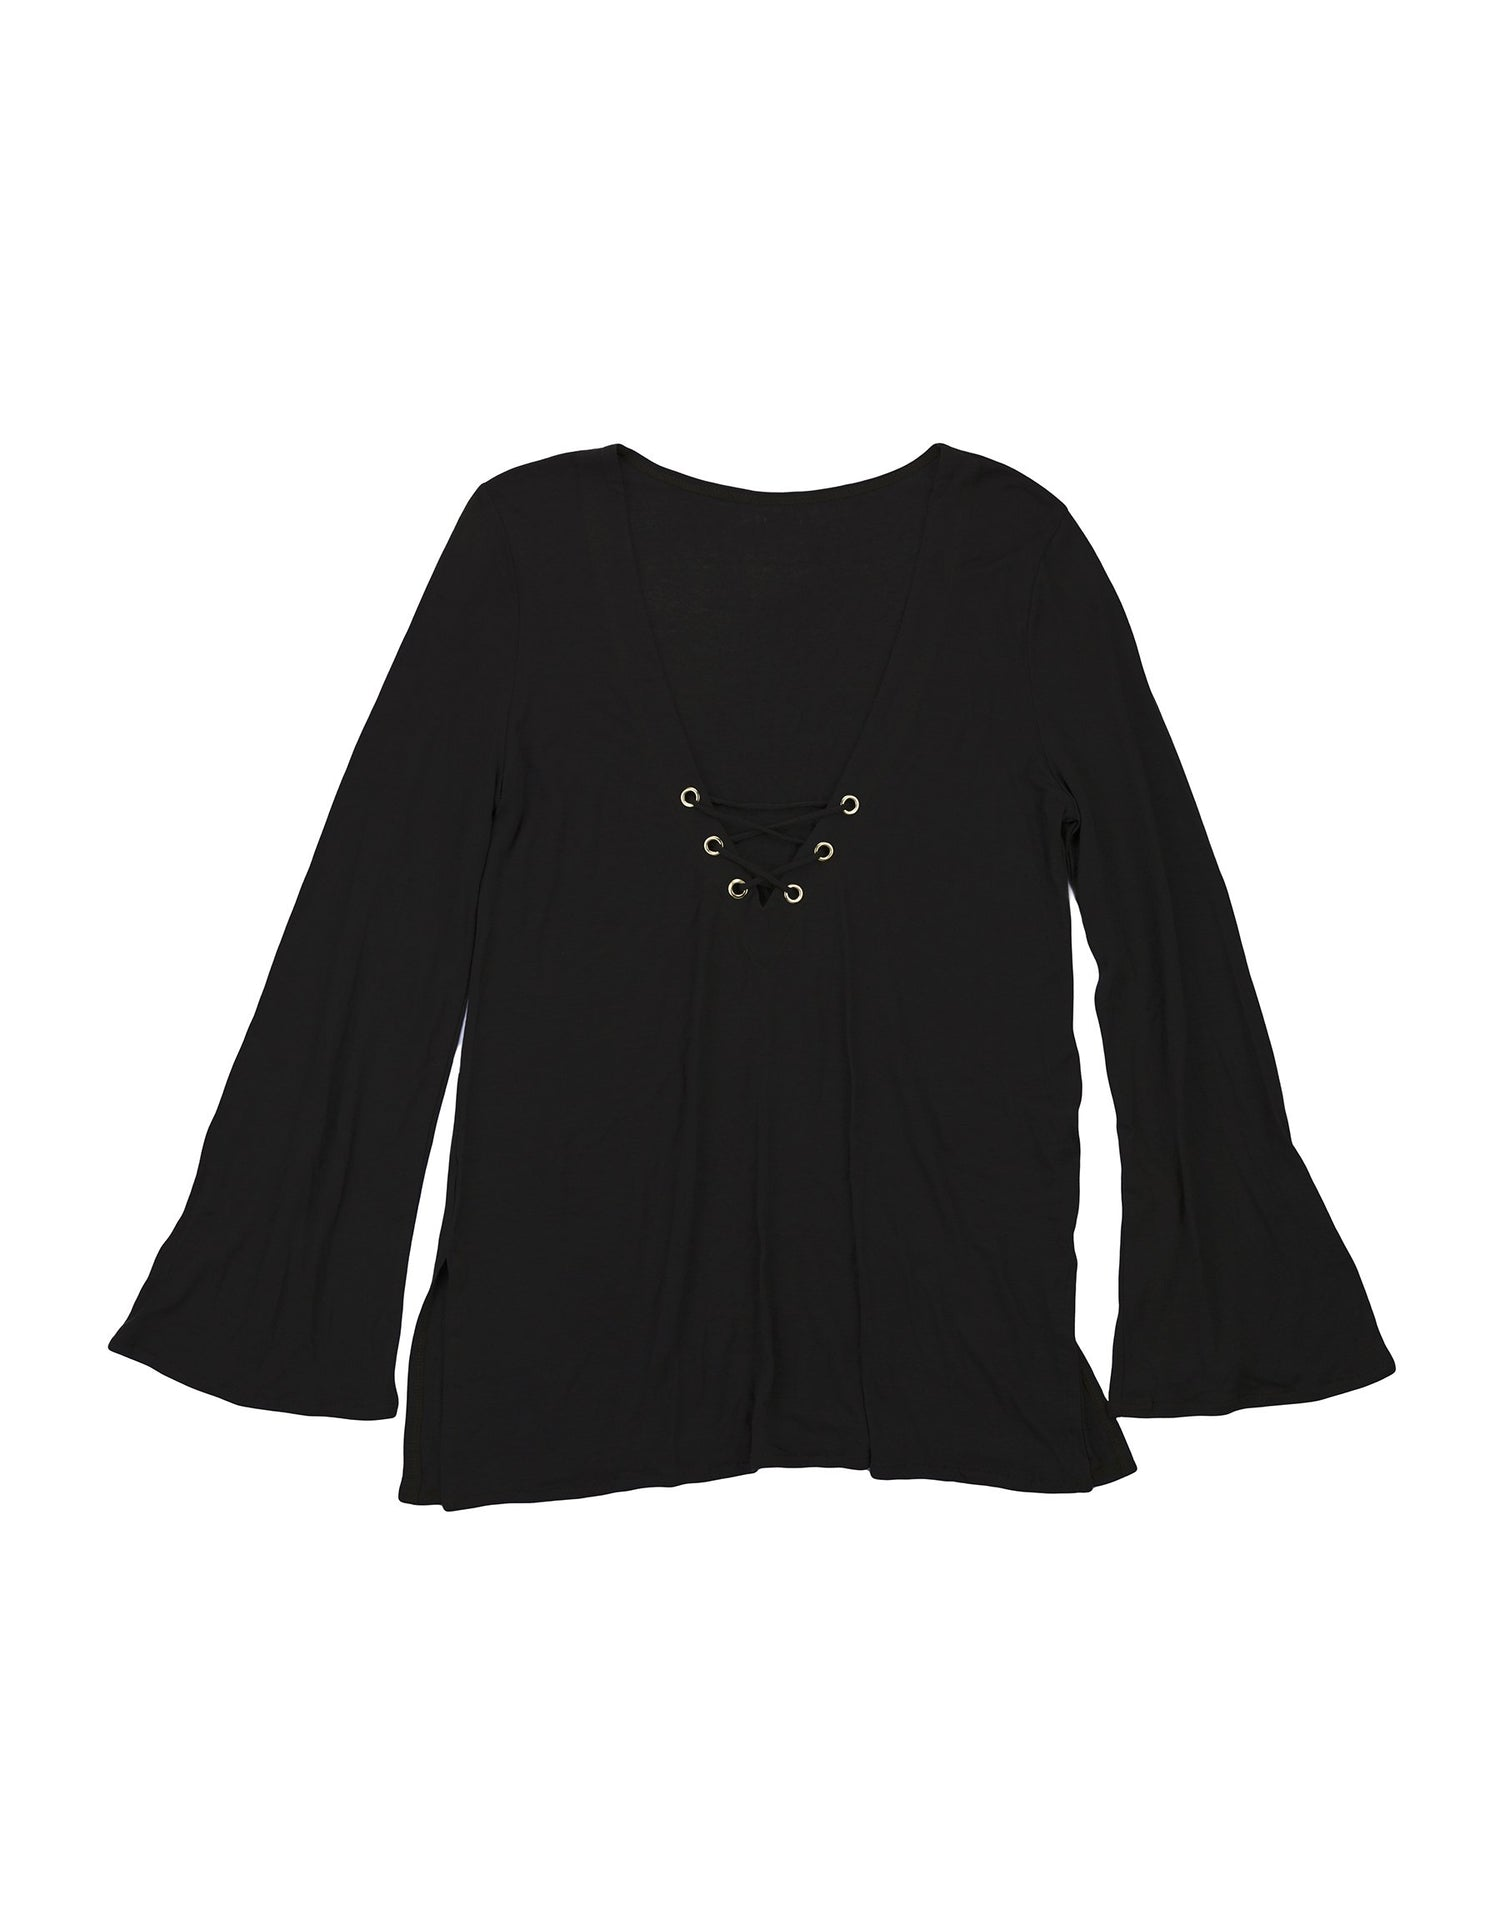 Black Long Sleeved Tunic Dress - product view